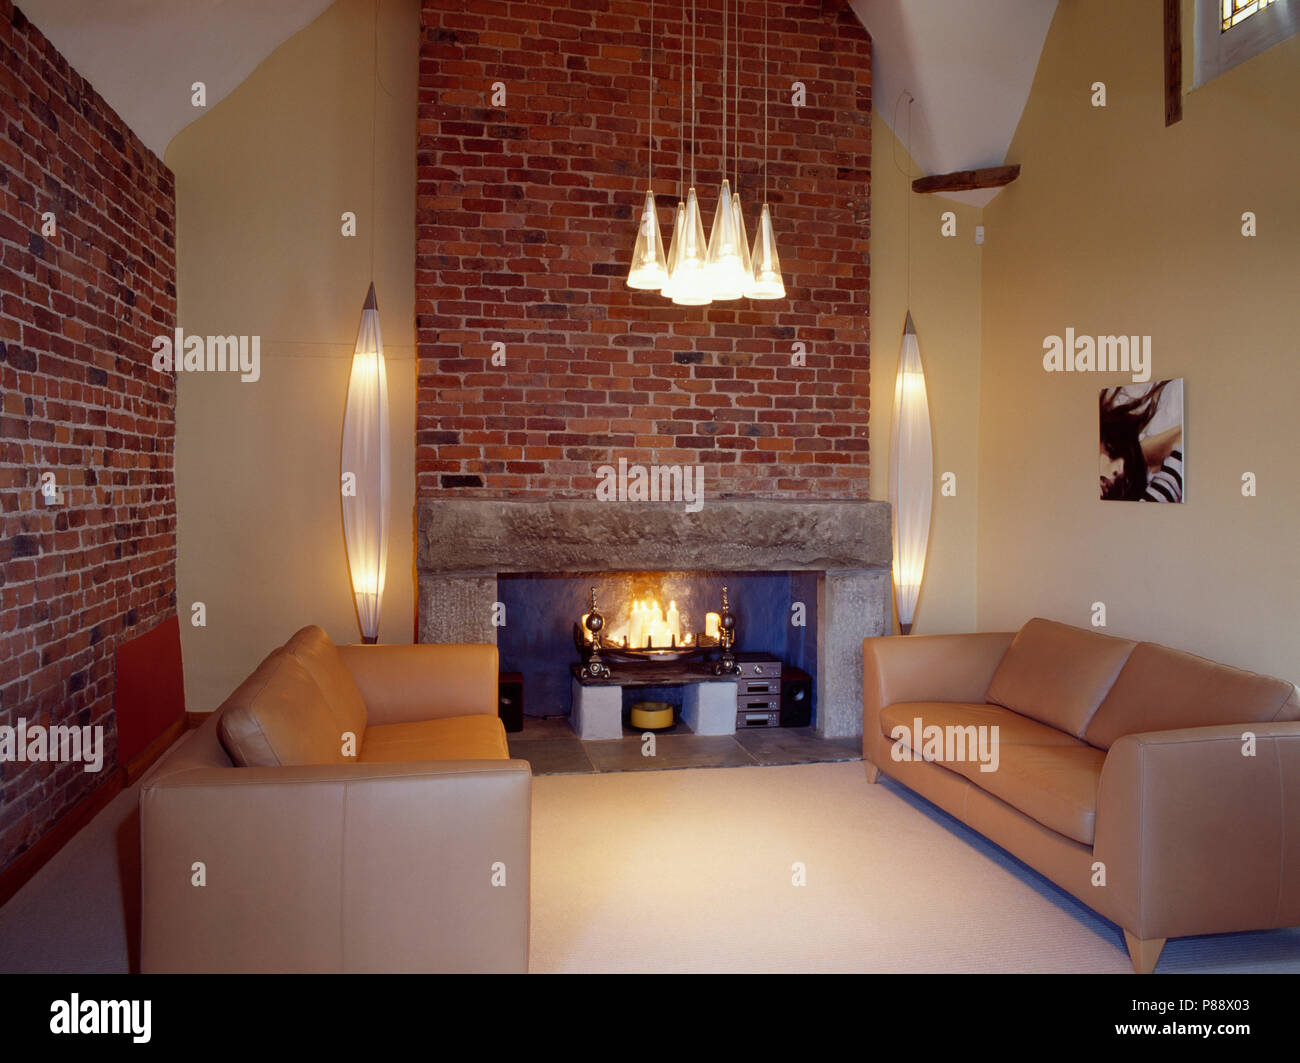 Remarkable Leather Sofas In Modern Country Living Room With Fireplace Dailytribune Chair Design For Home Dailytribuneorg